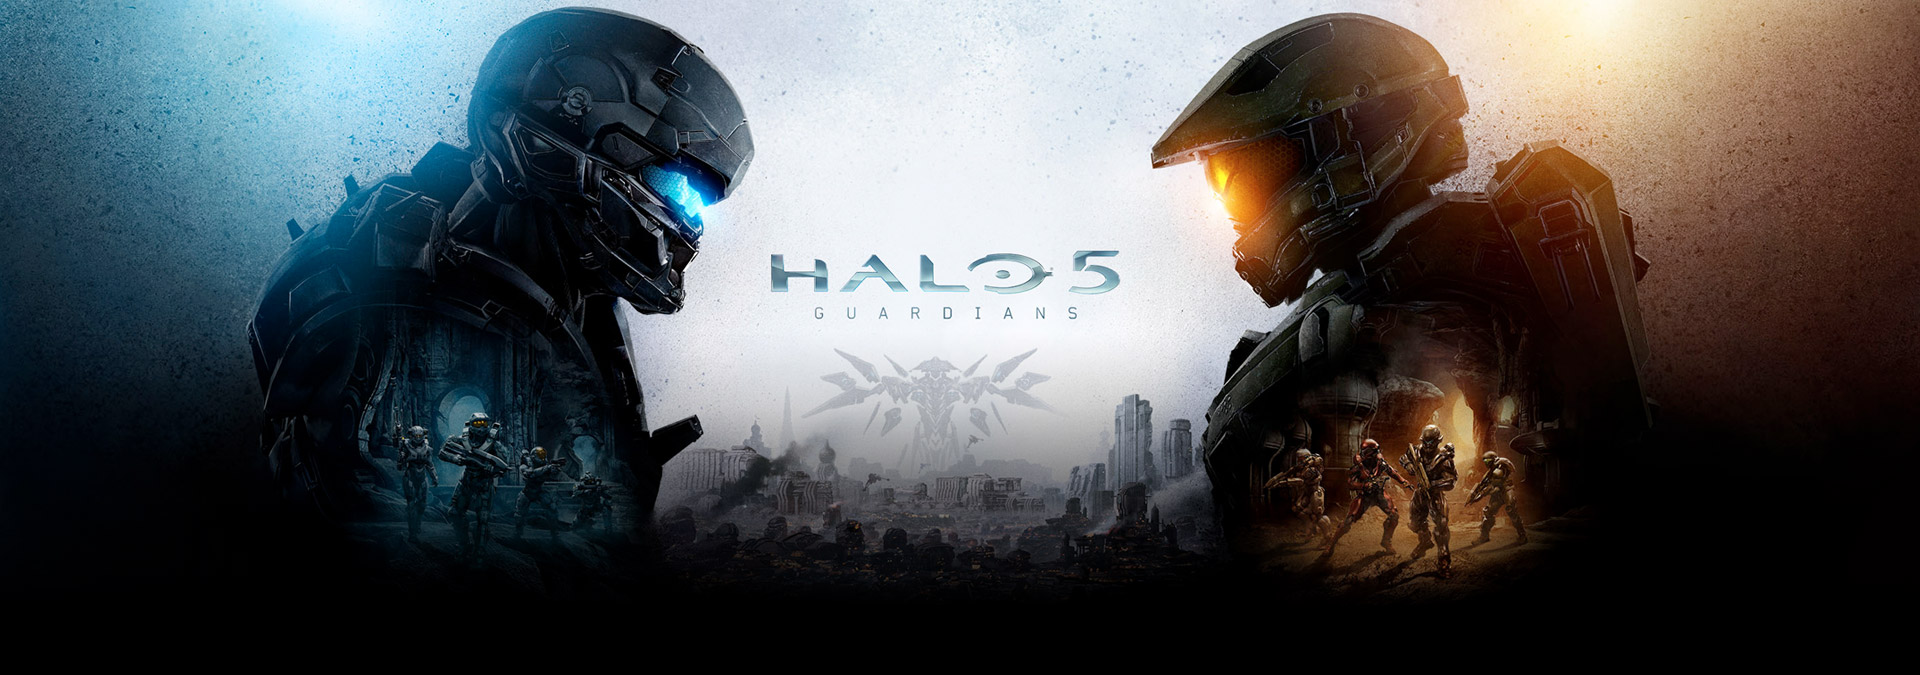 UK Prepares for Halo 5 Launch, MCM Comic-Con & EGL